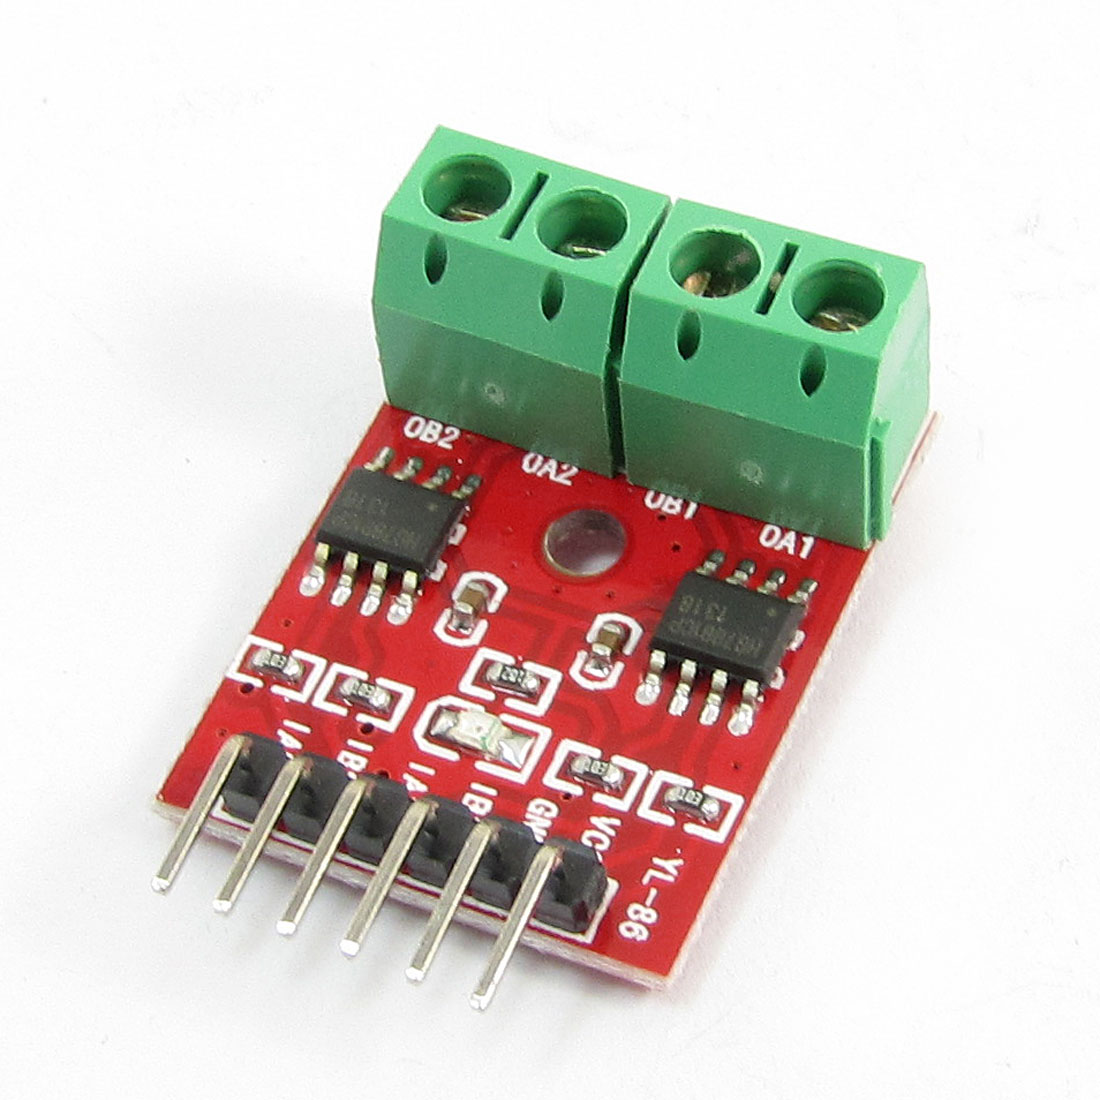 L9110 2-Channel Motor Driver Module 2.5-12V 0.8A Red Green